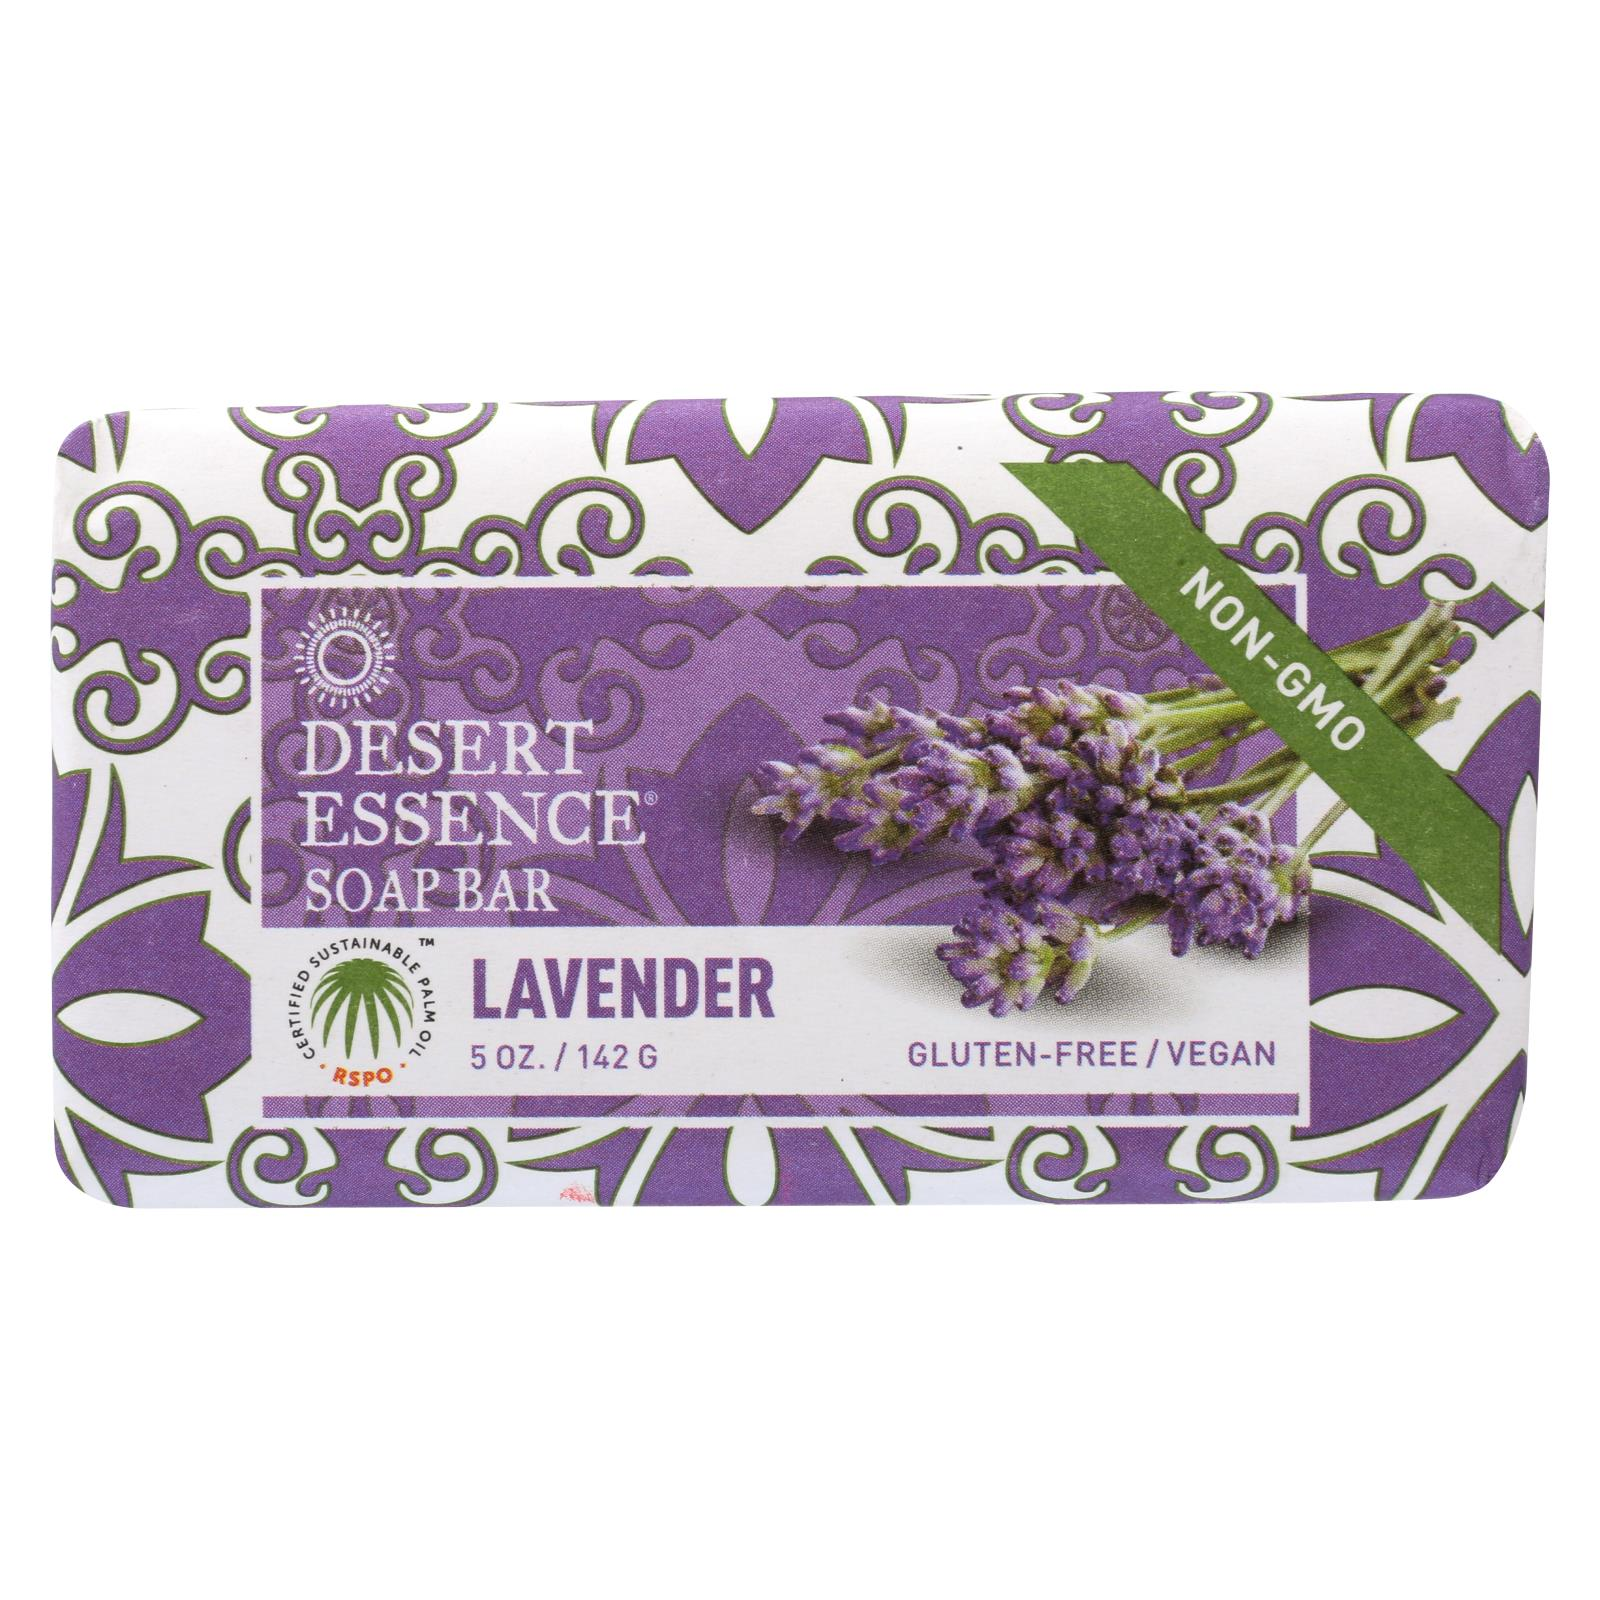 Buy Desert Essence Bar Soap - Lavender - 5 oz - Bar Soap from Veroeco.com